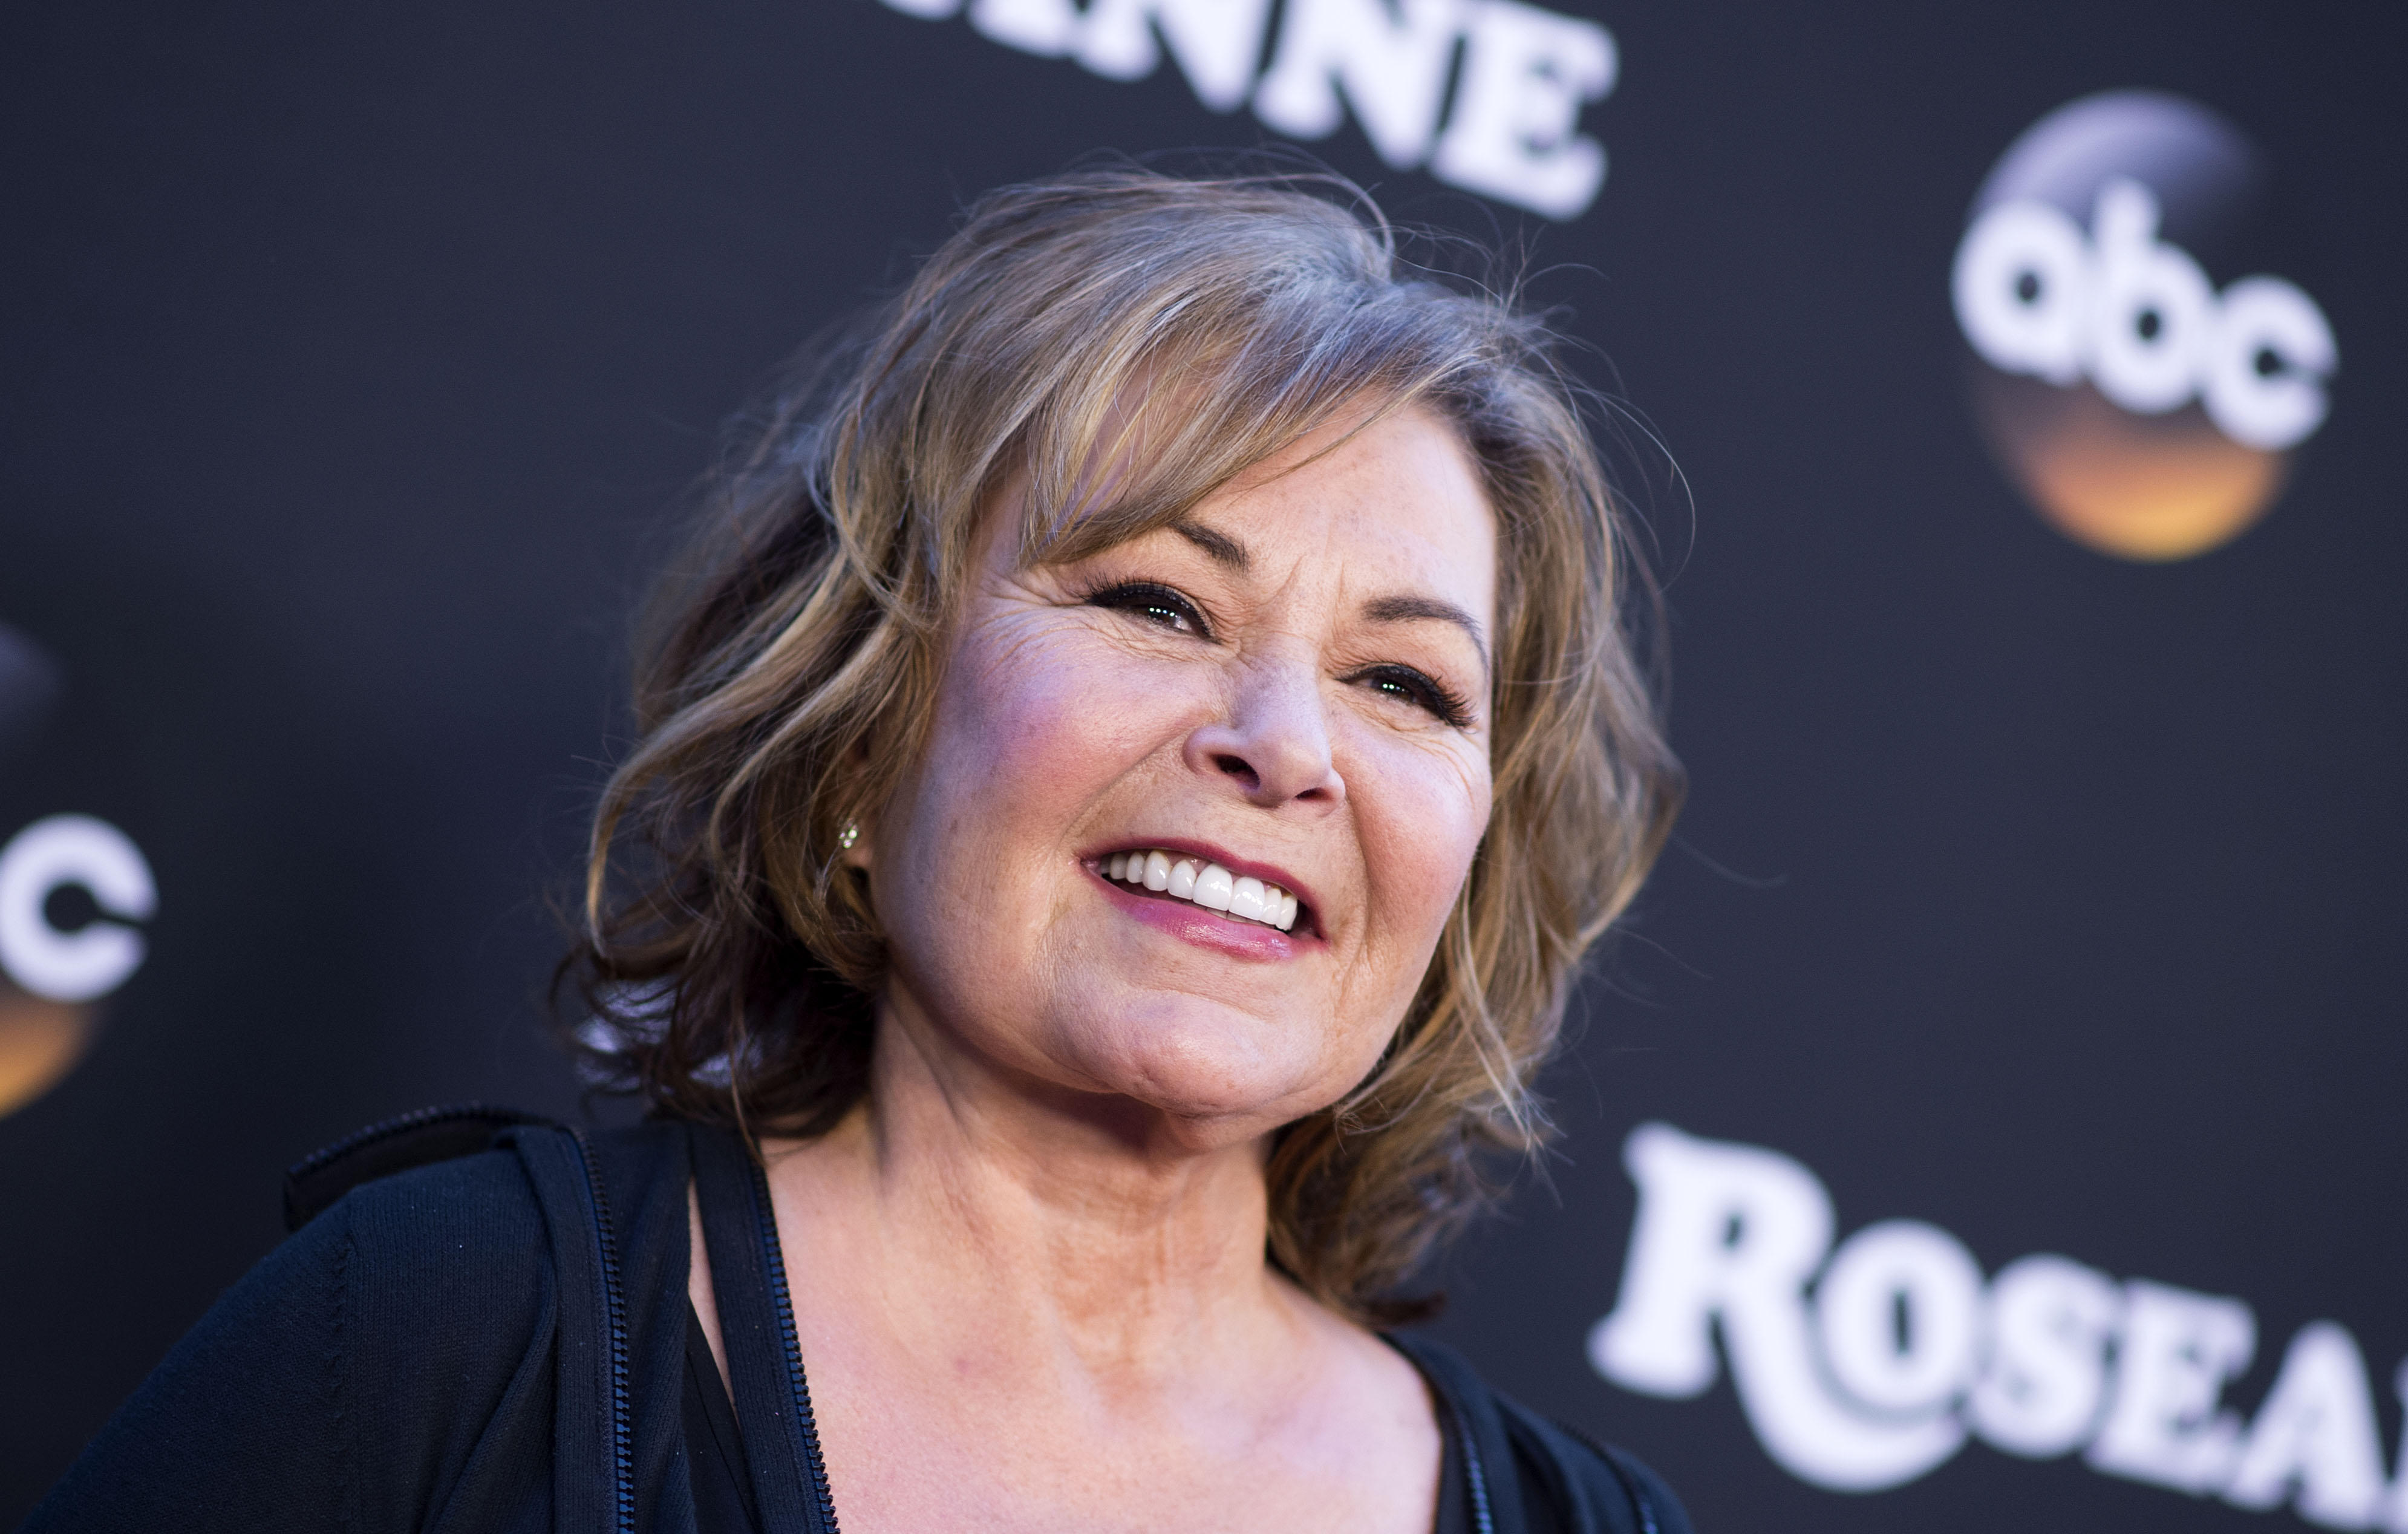 Roseanne Barr younger